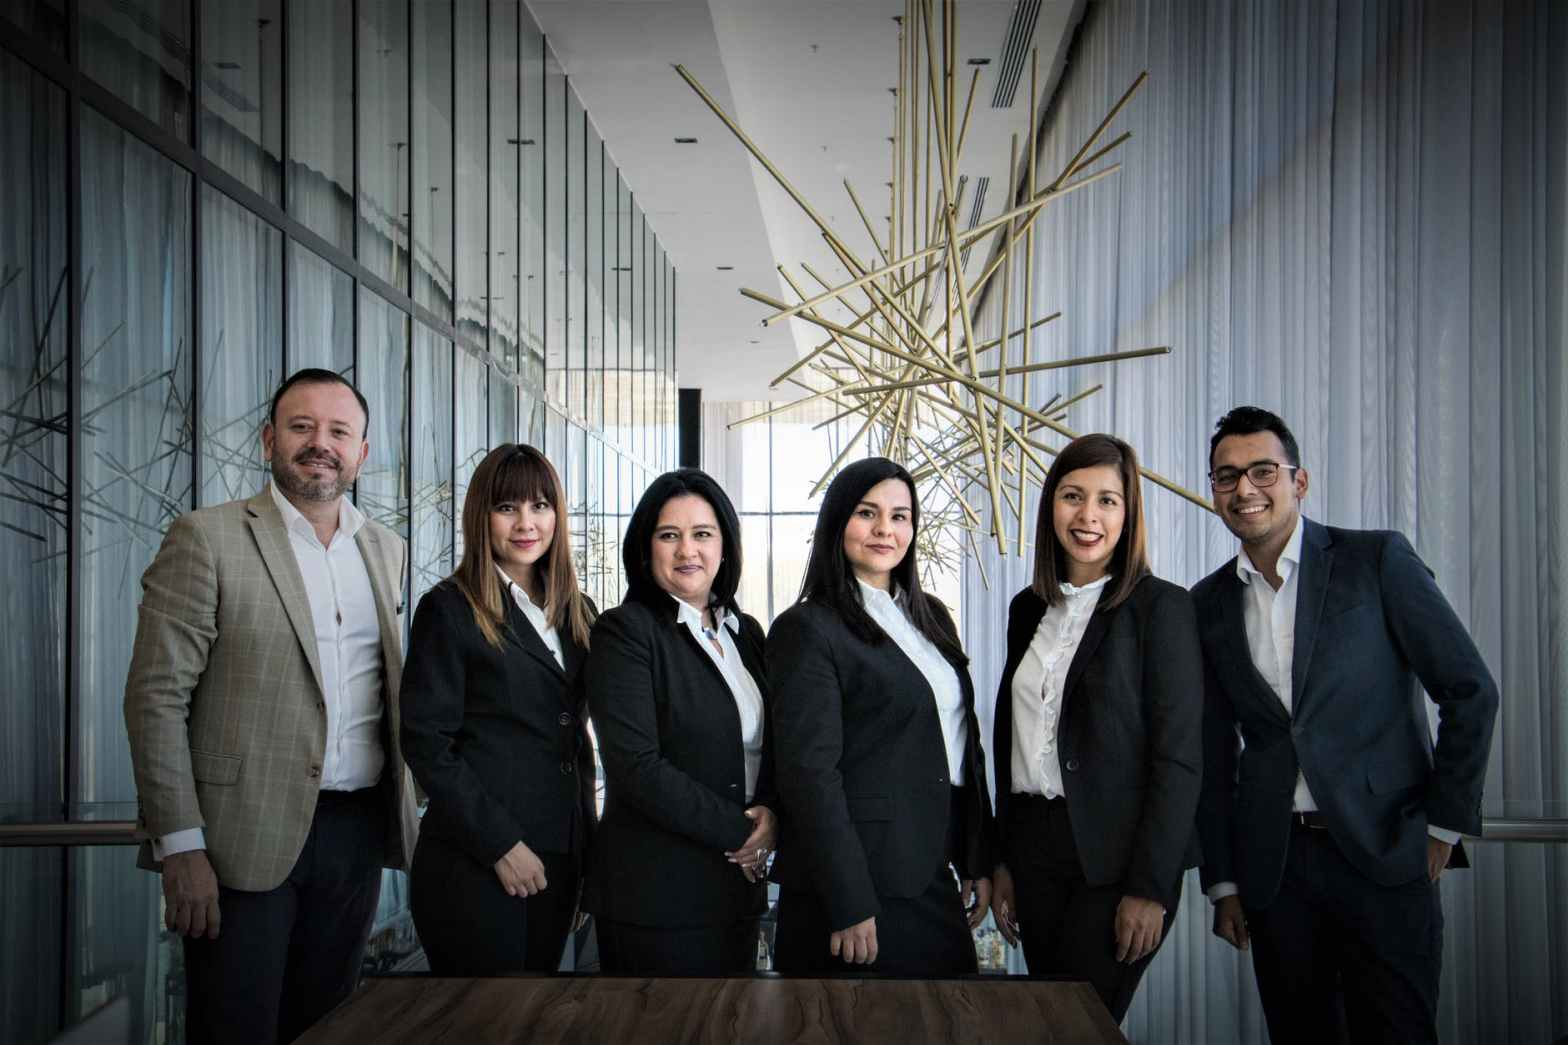 group of people in dress suits as cover images for succession planning post